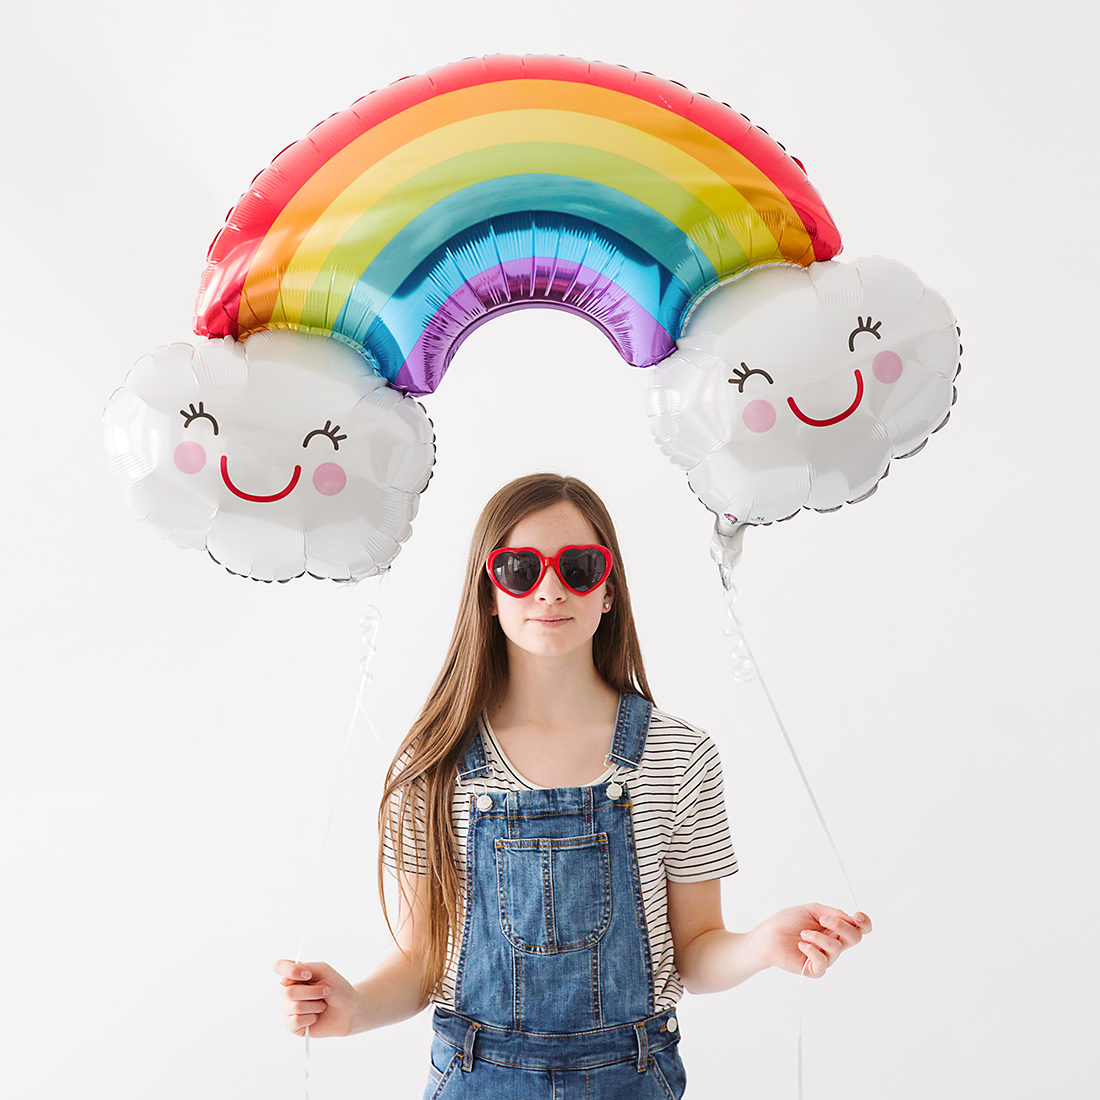 Teen girl with rainbow balloon